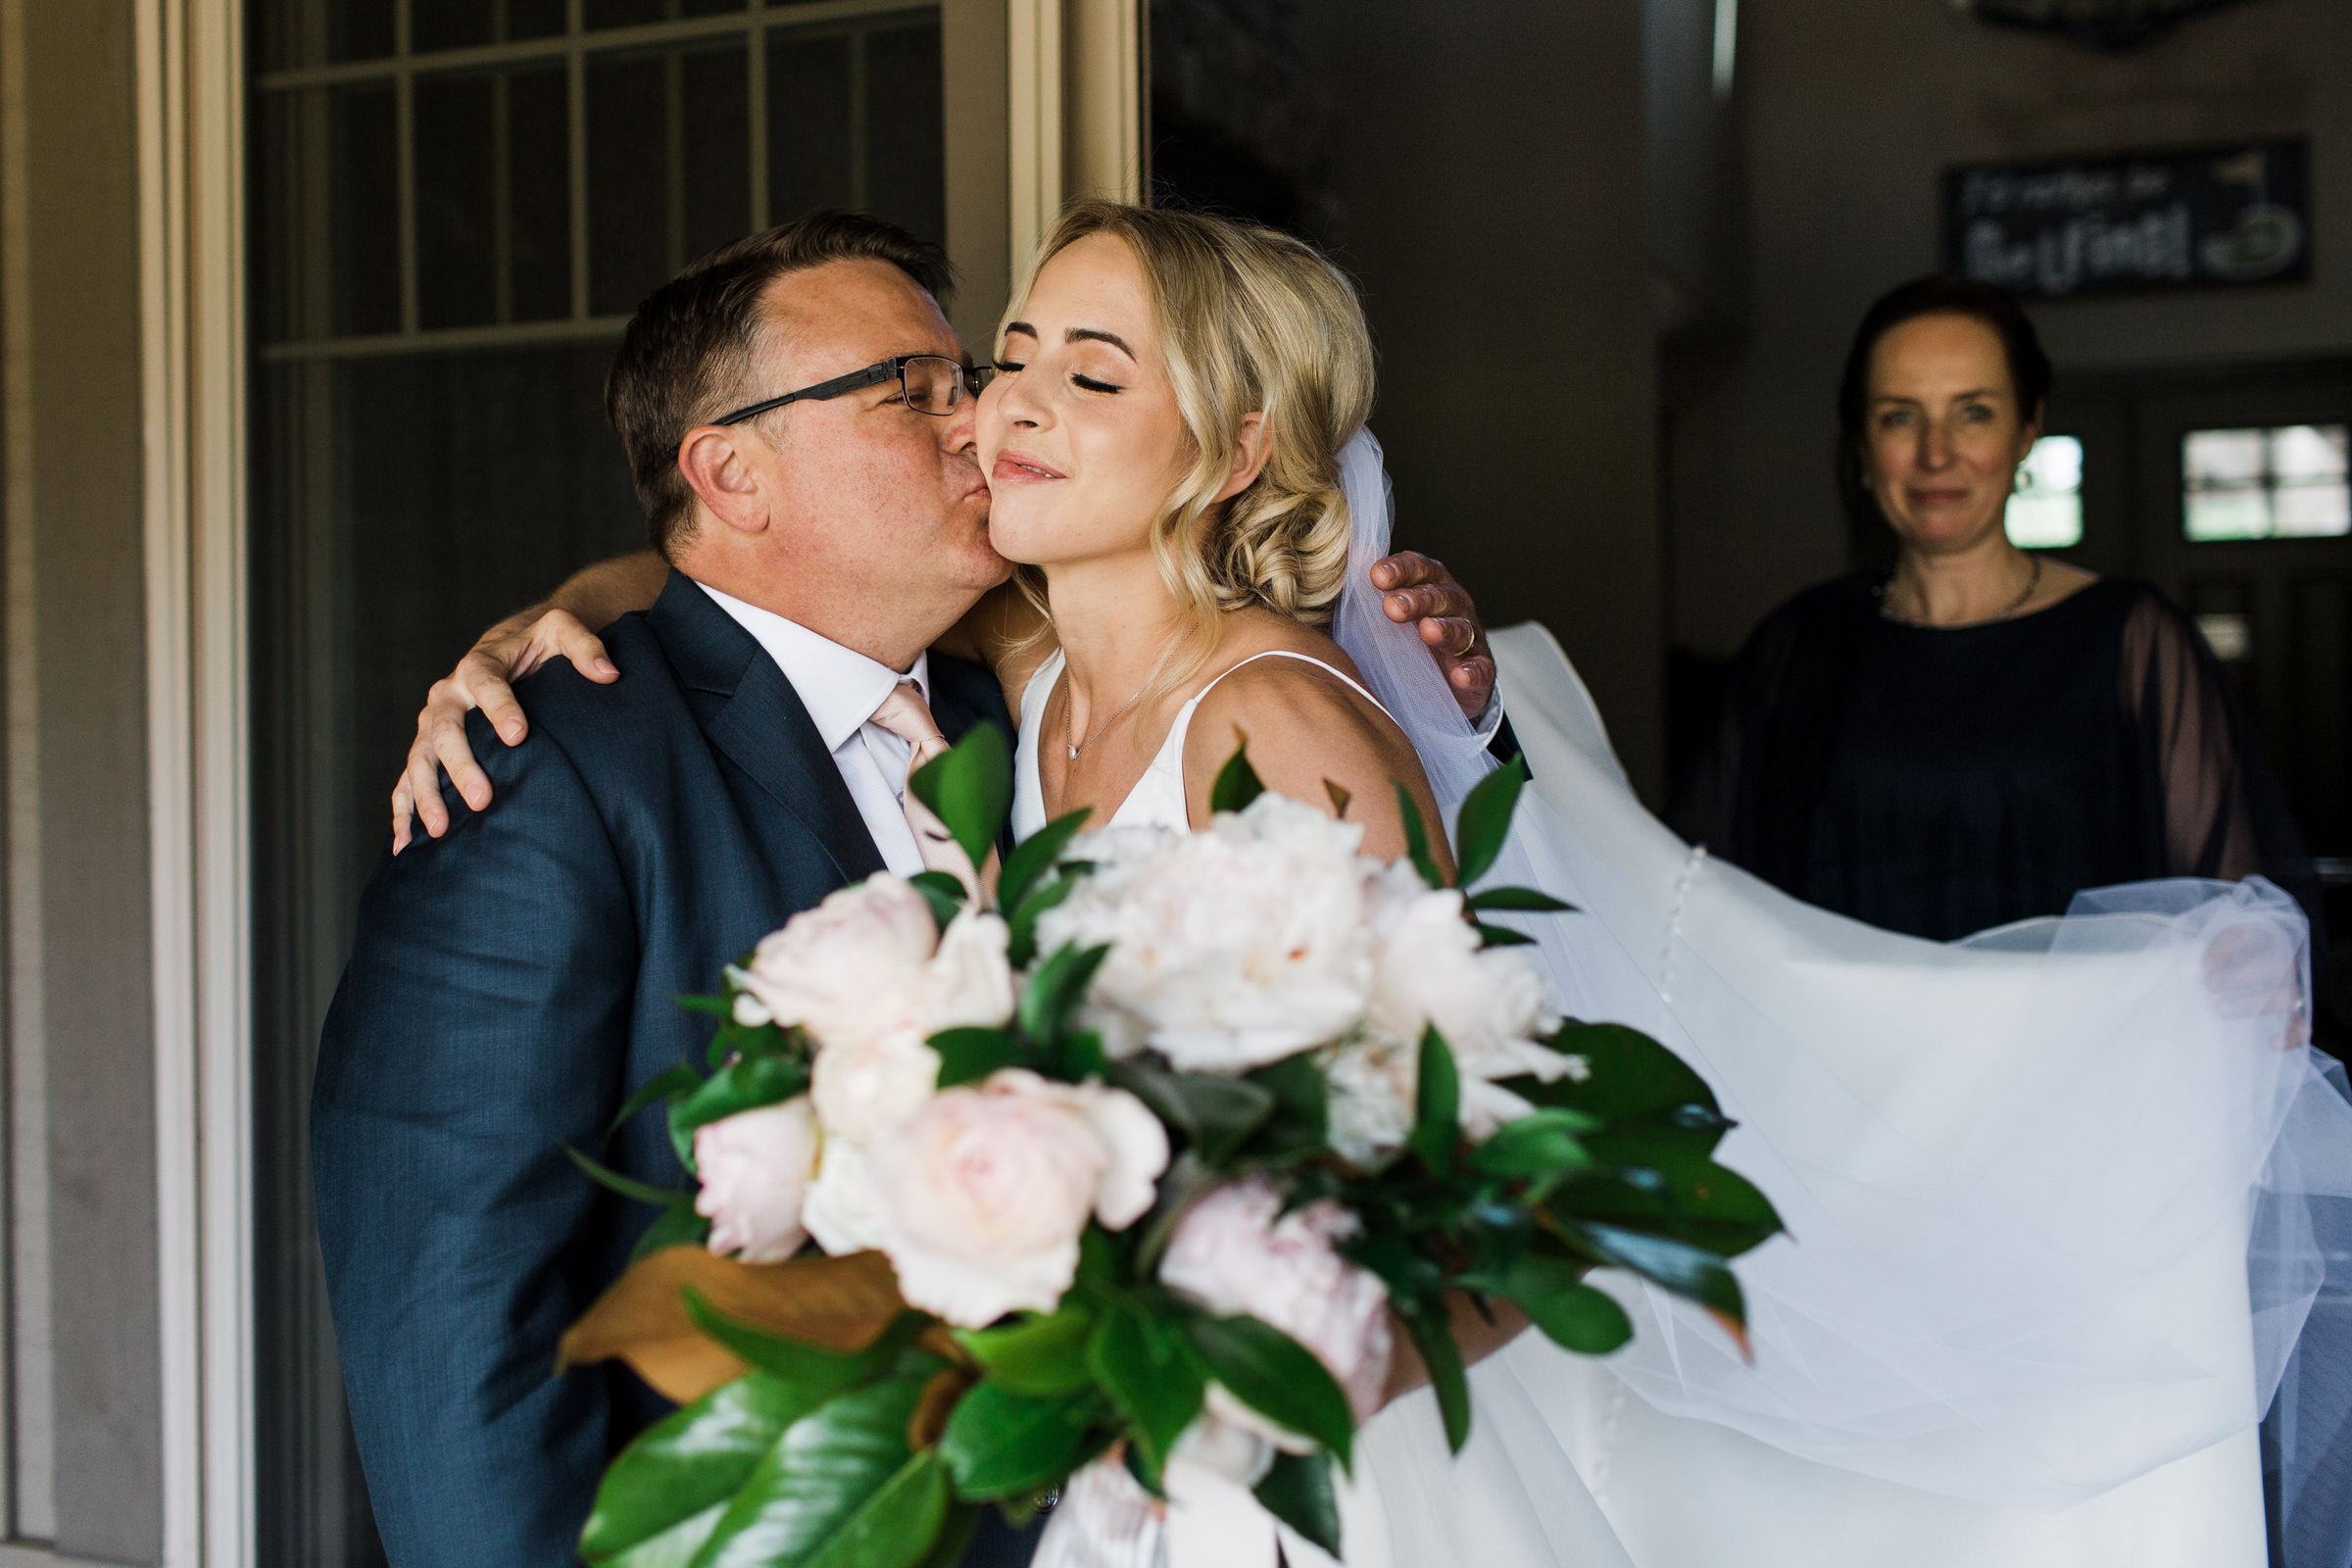 Bride embraces father while mom looks on - photo by Stephanie Cristalli Photography